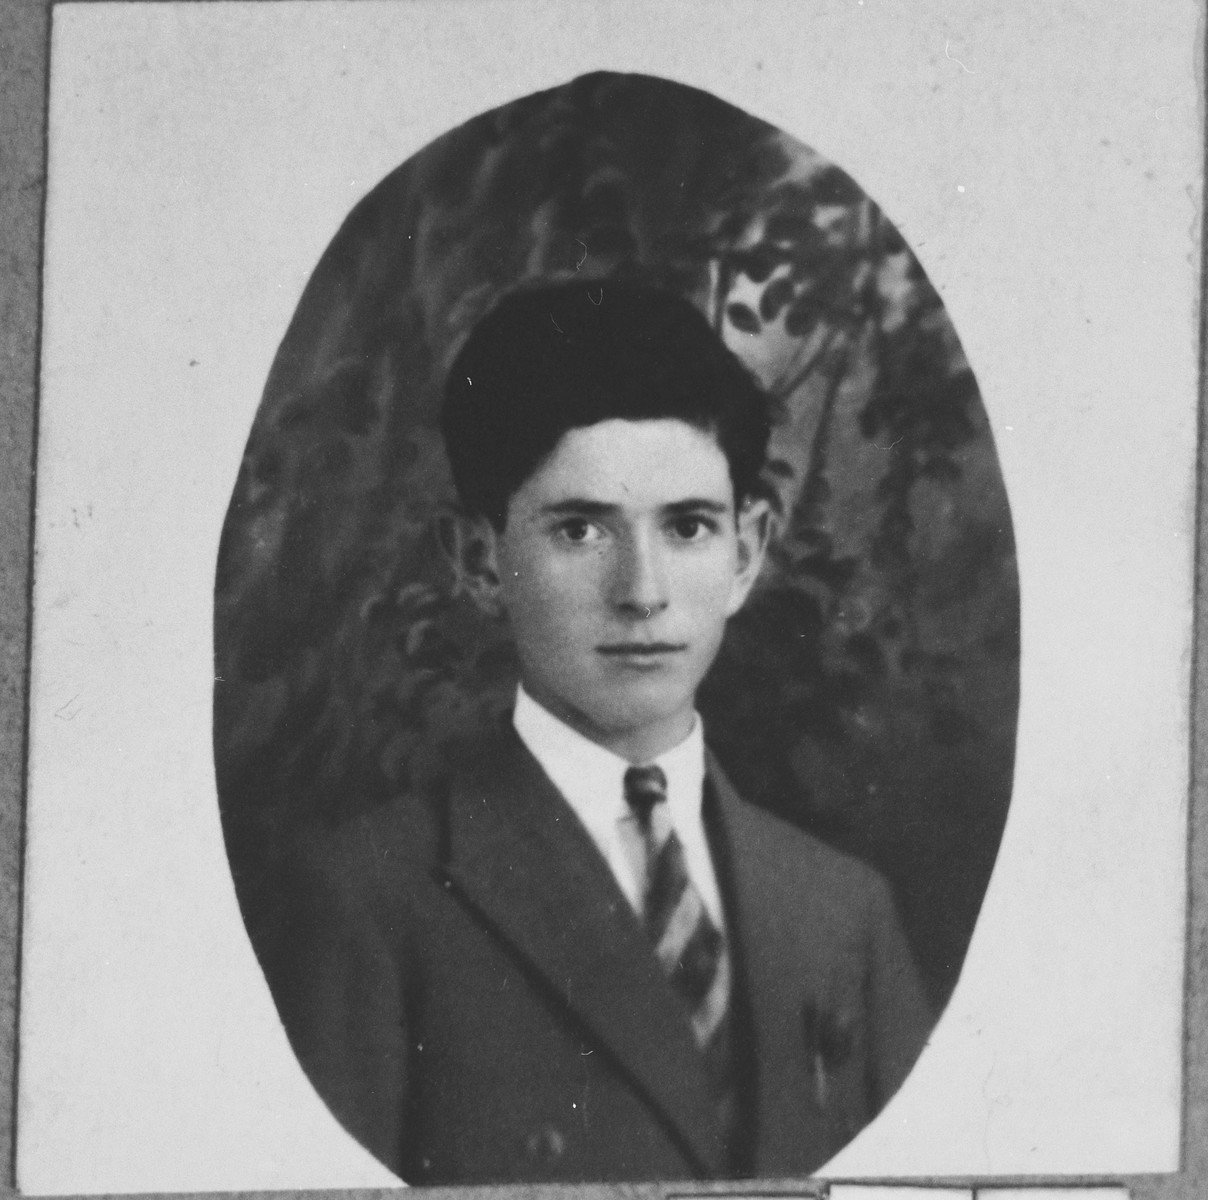 Portrait of Mois Koen, son of Shalom Koen.  He was a miller.  He lived at Banatska 21 in Bitola.